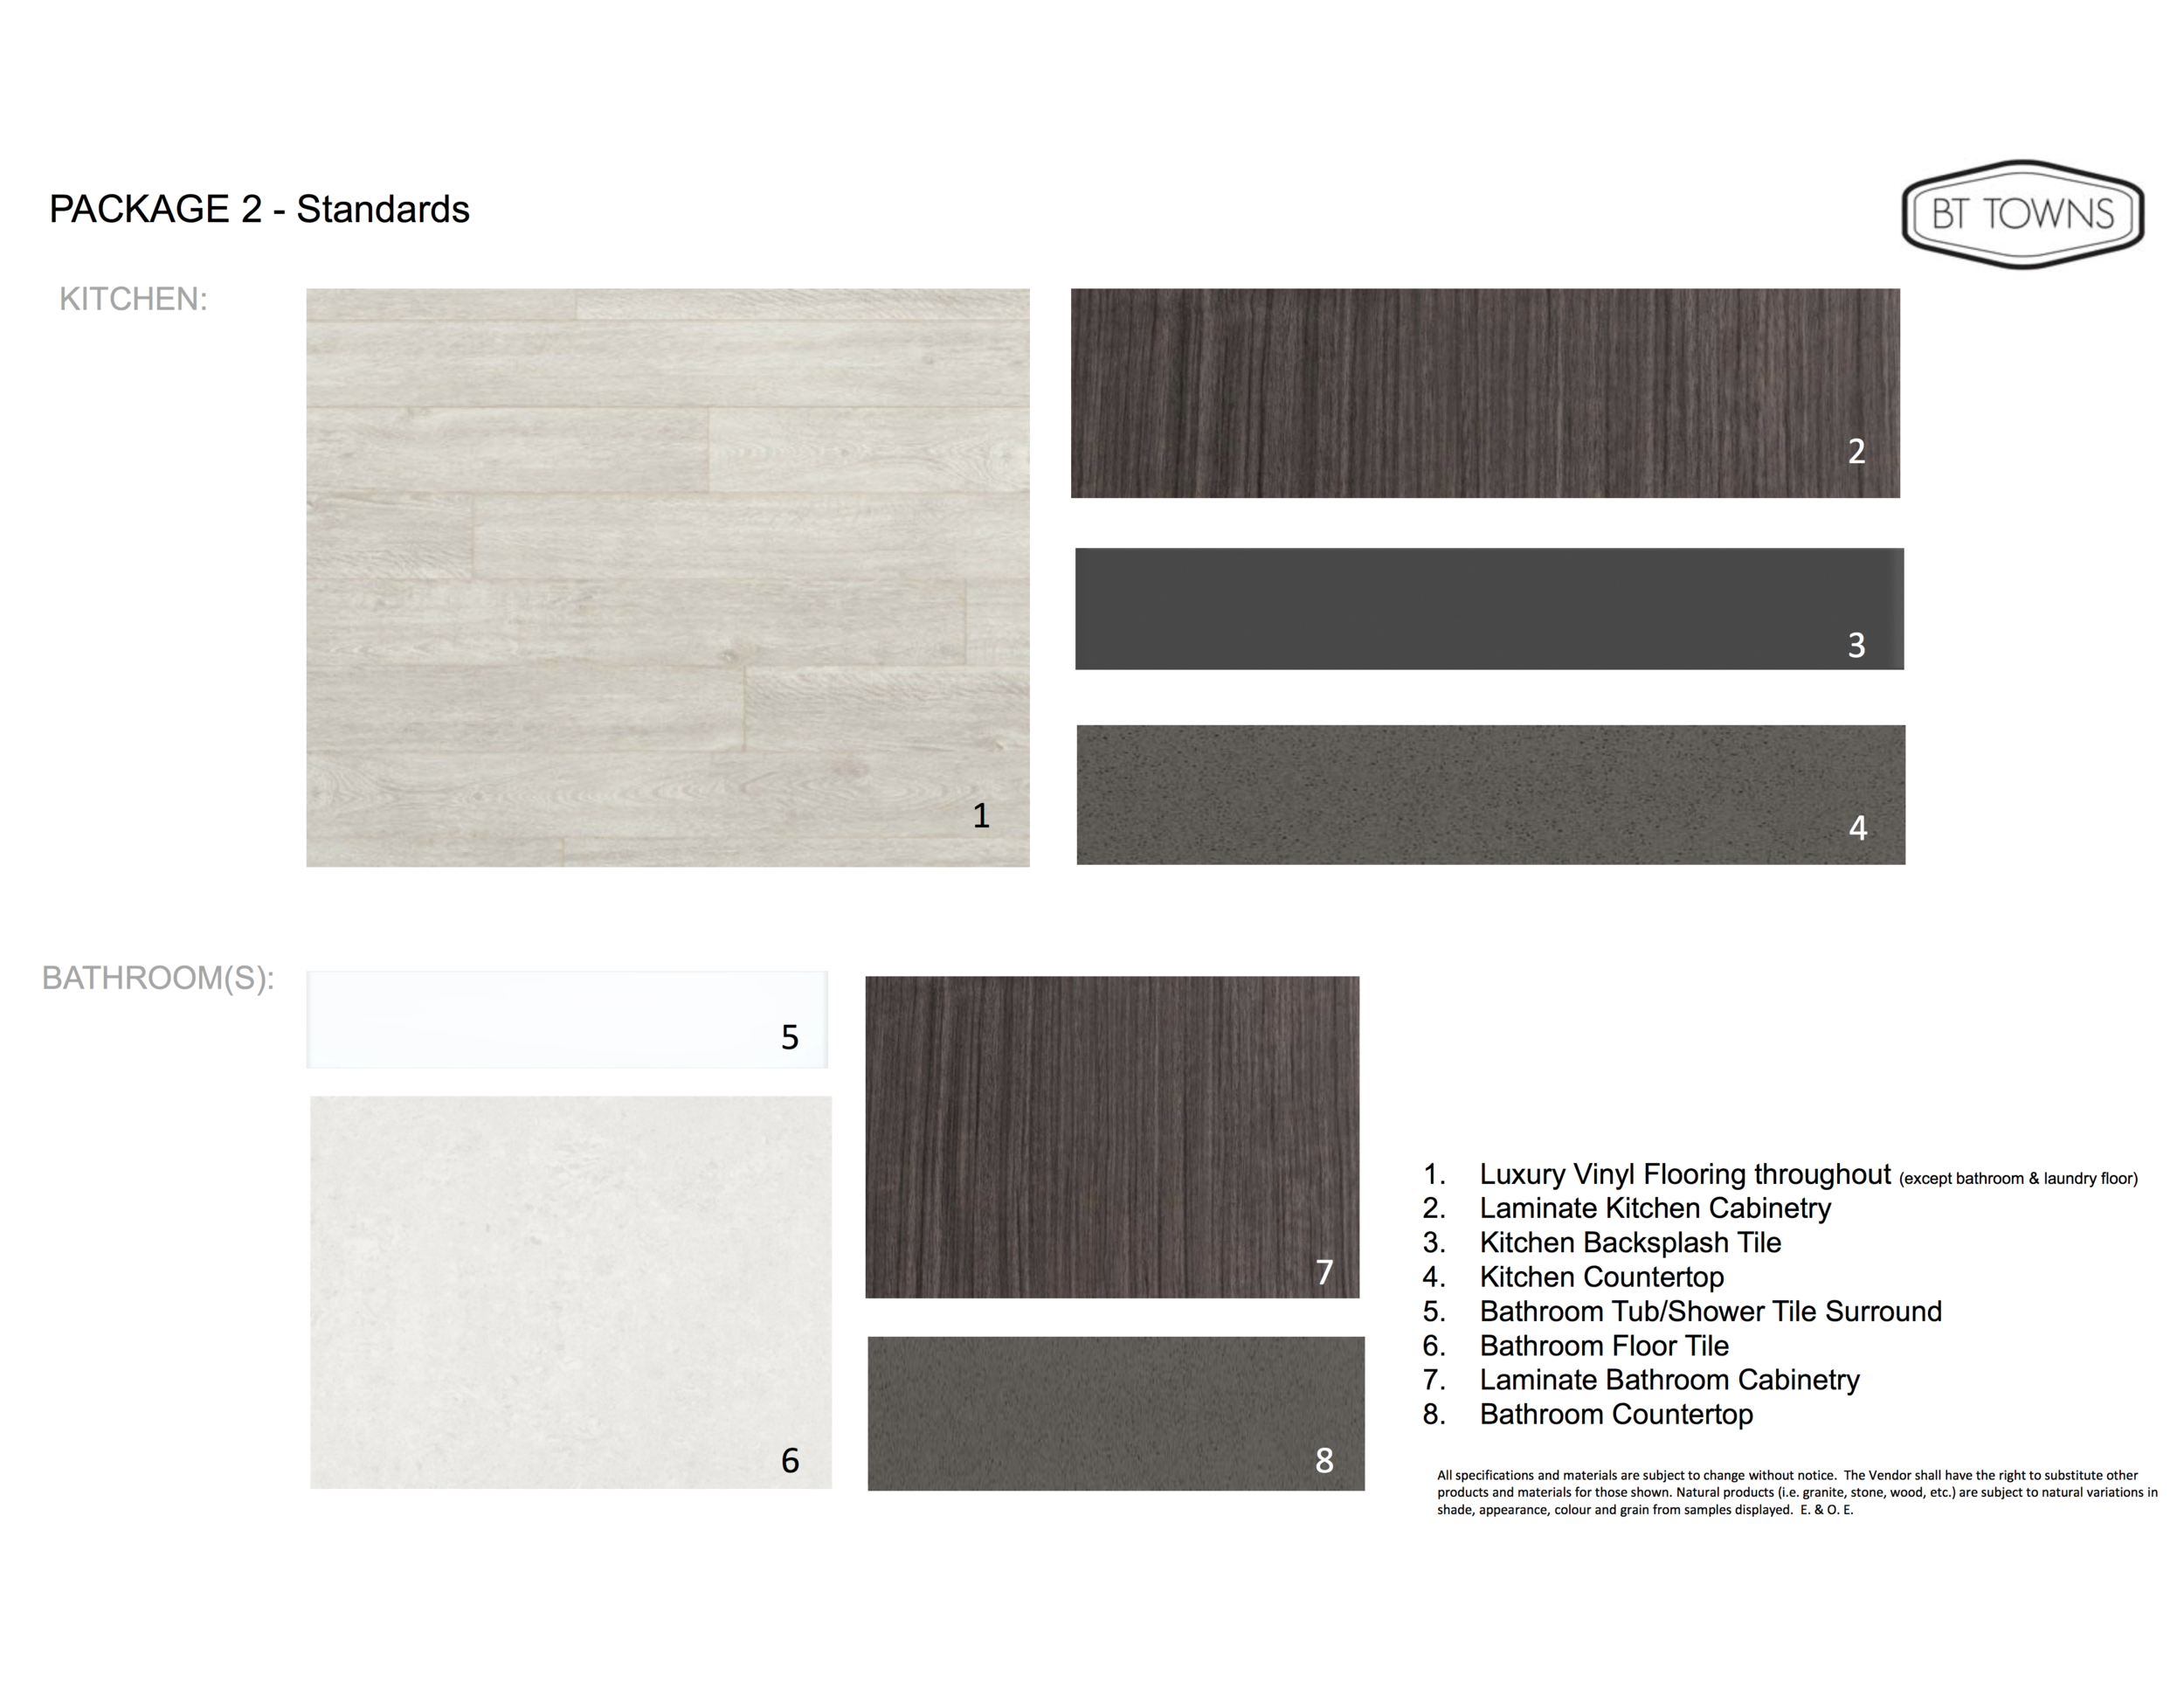 Standard Finishes and Features - Package 2